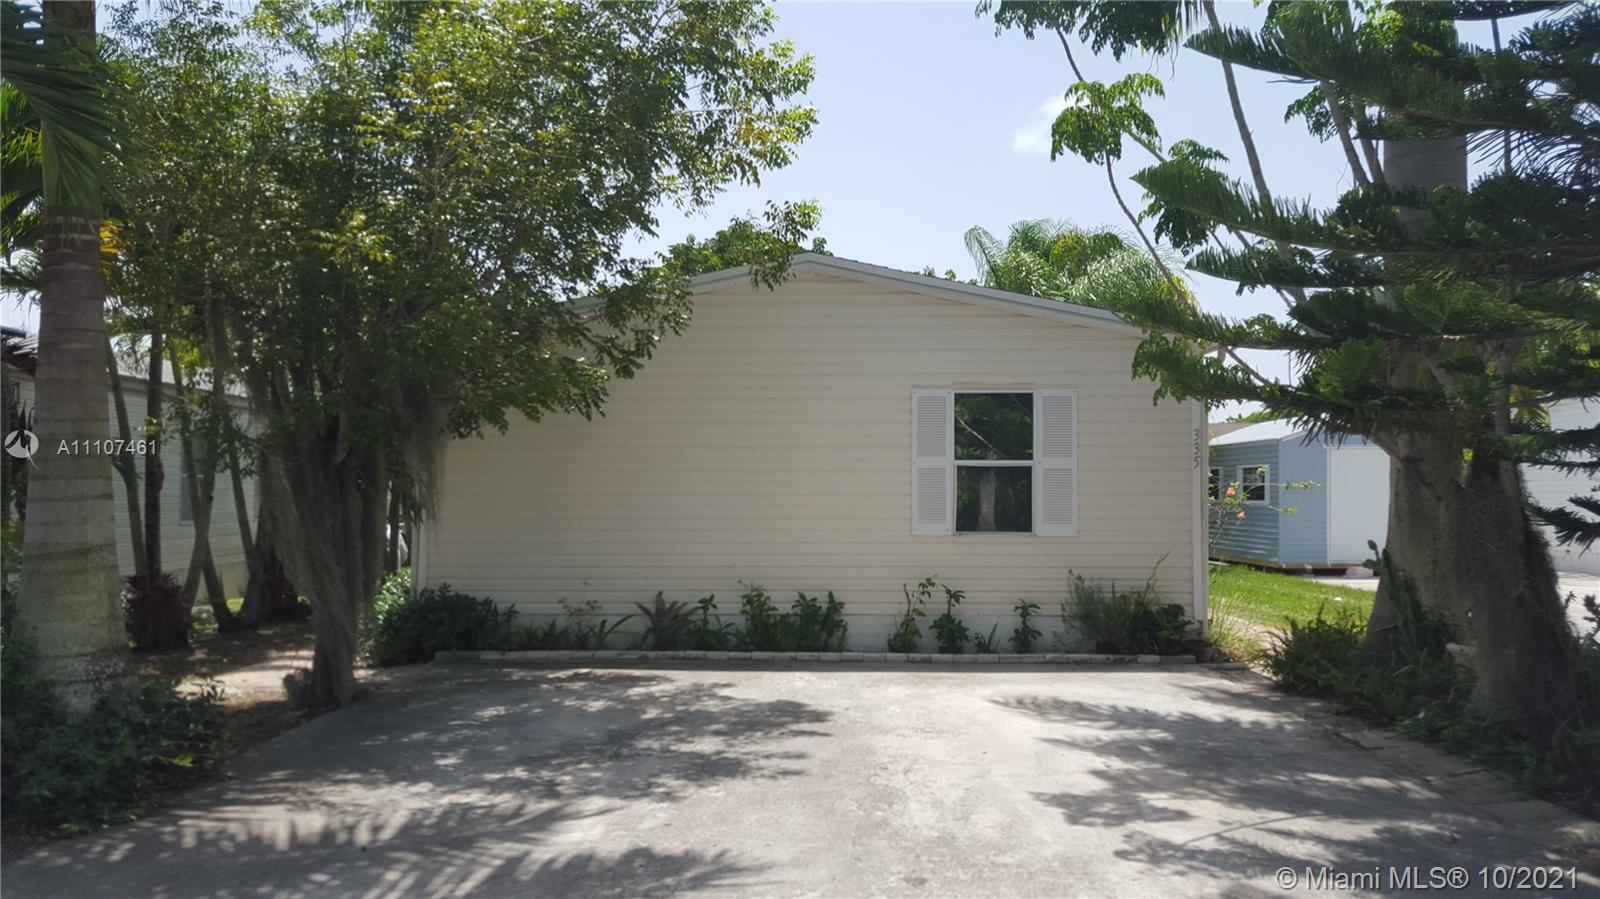 Residential For Sale at 19800 Miami